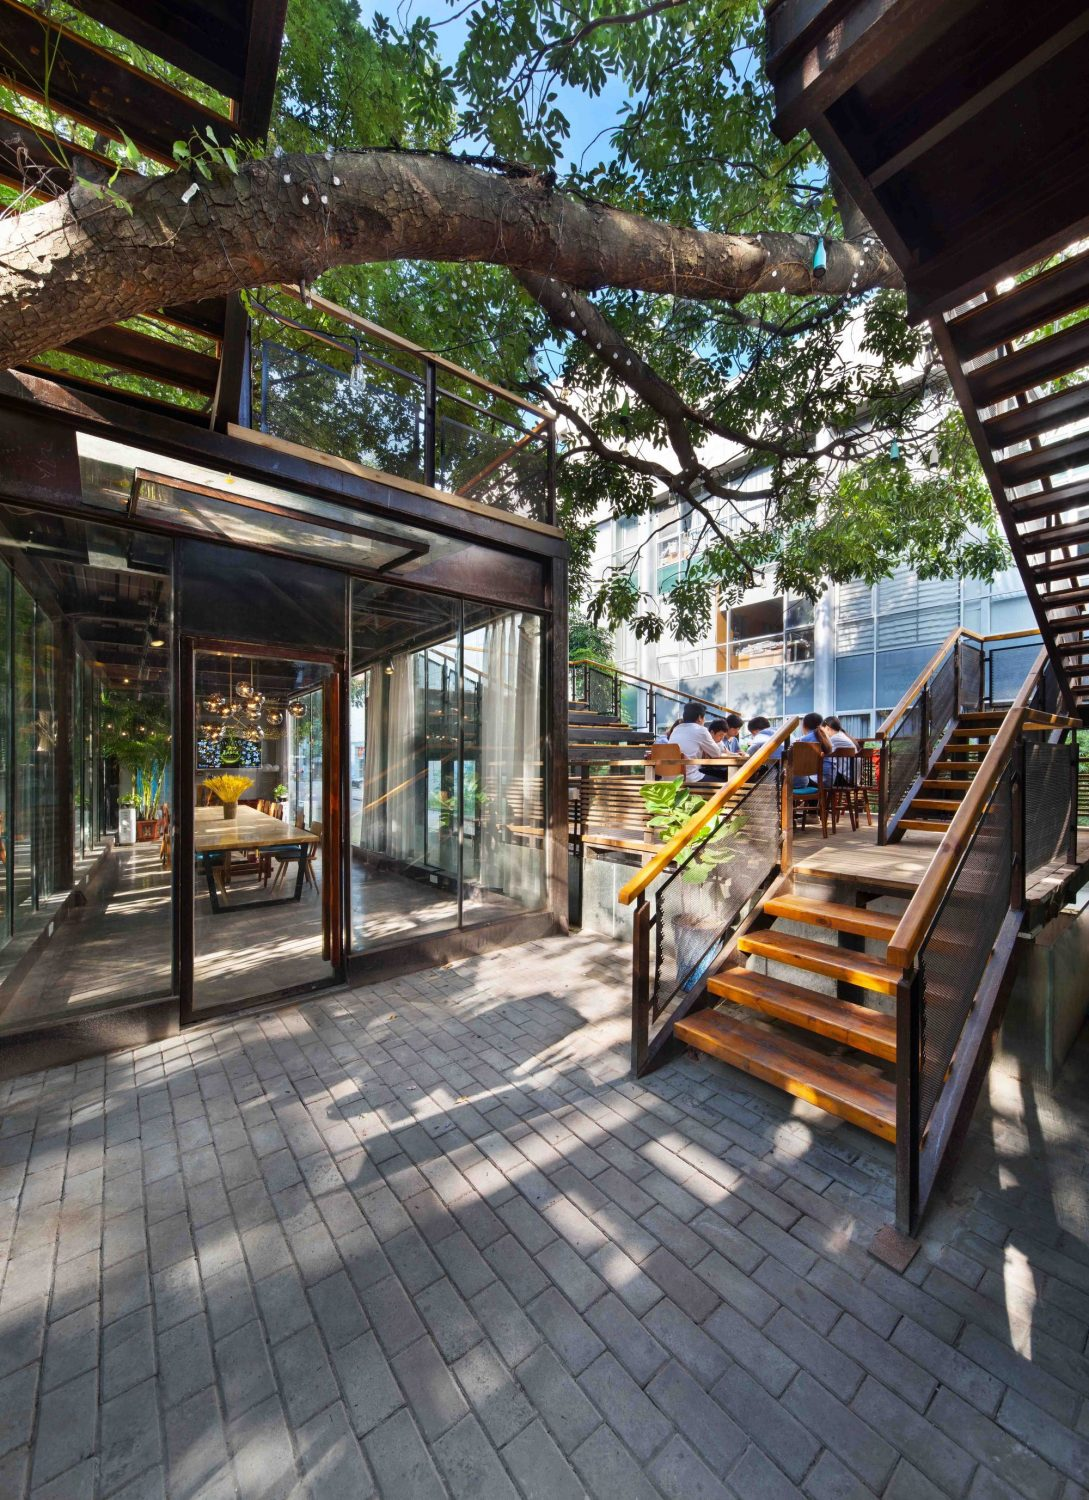 Shenzhen Maoshuli Cafe by Elsedesign